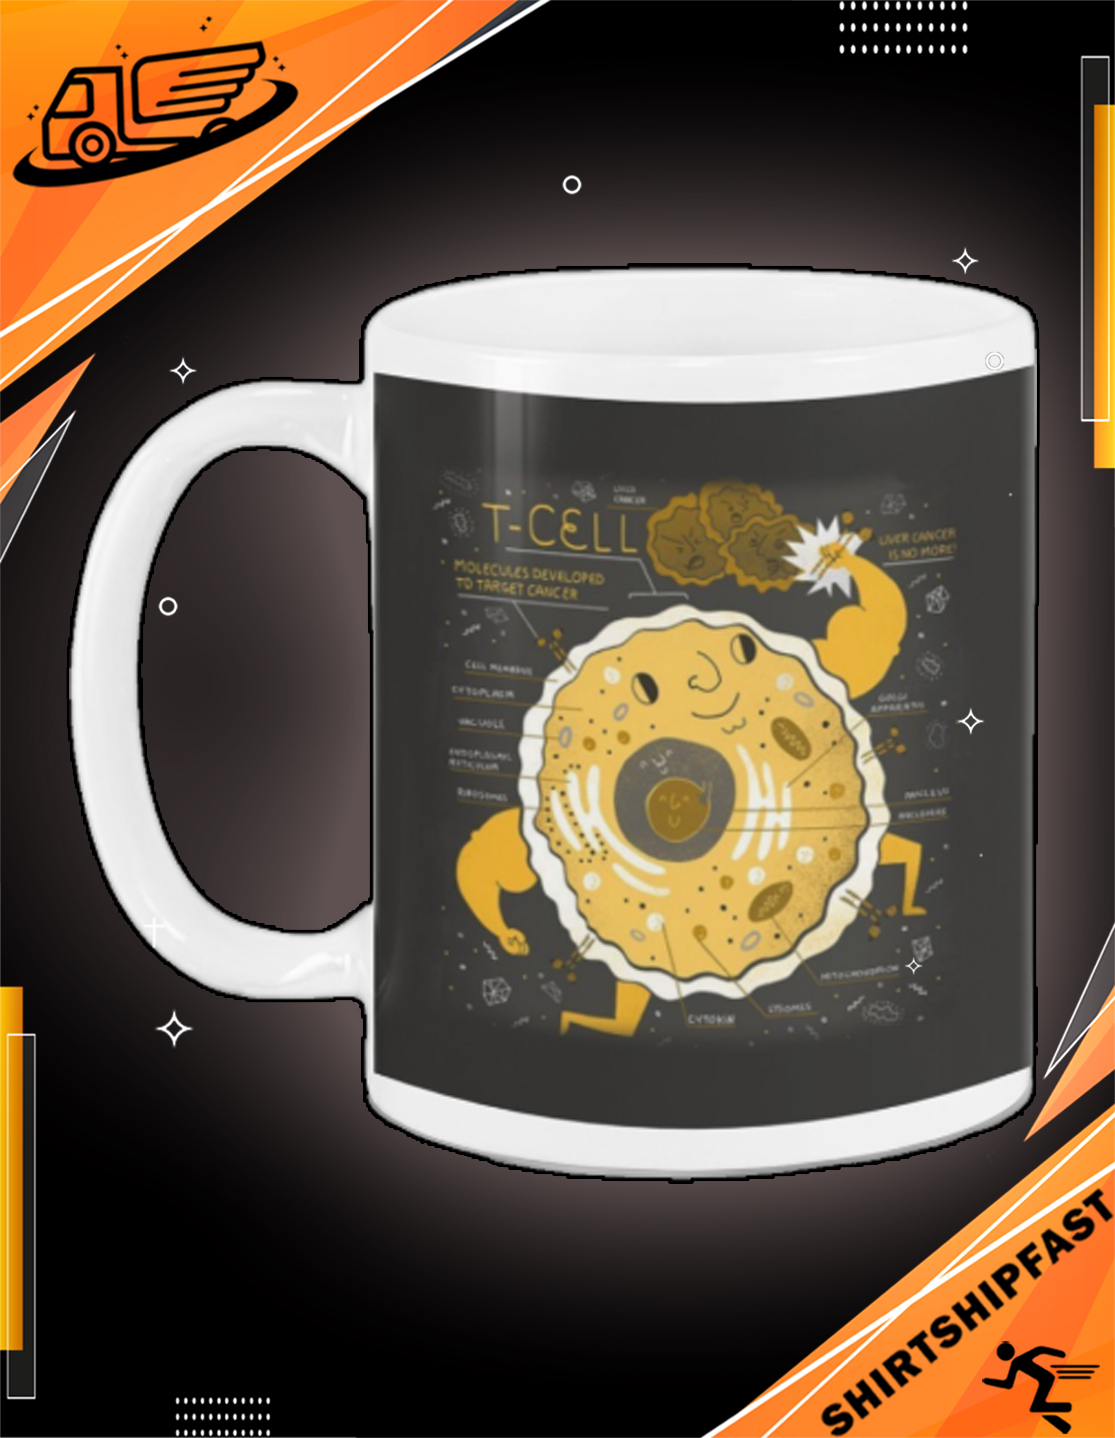 Science T-cell mug - Picture 3